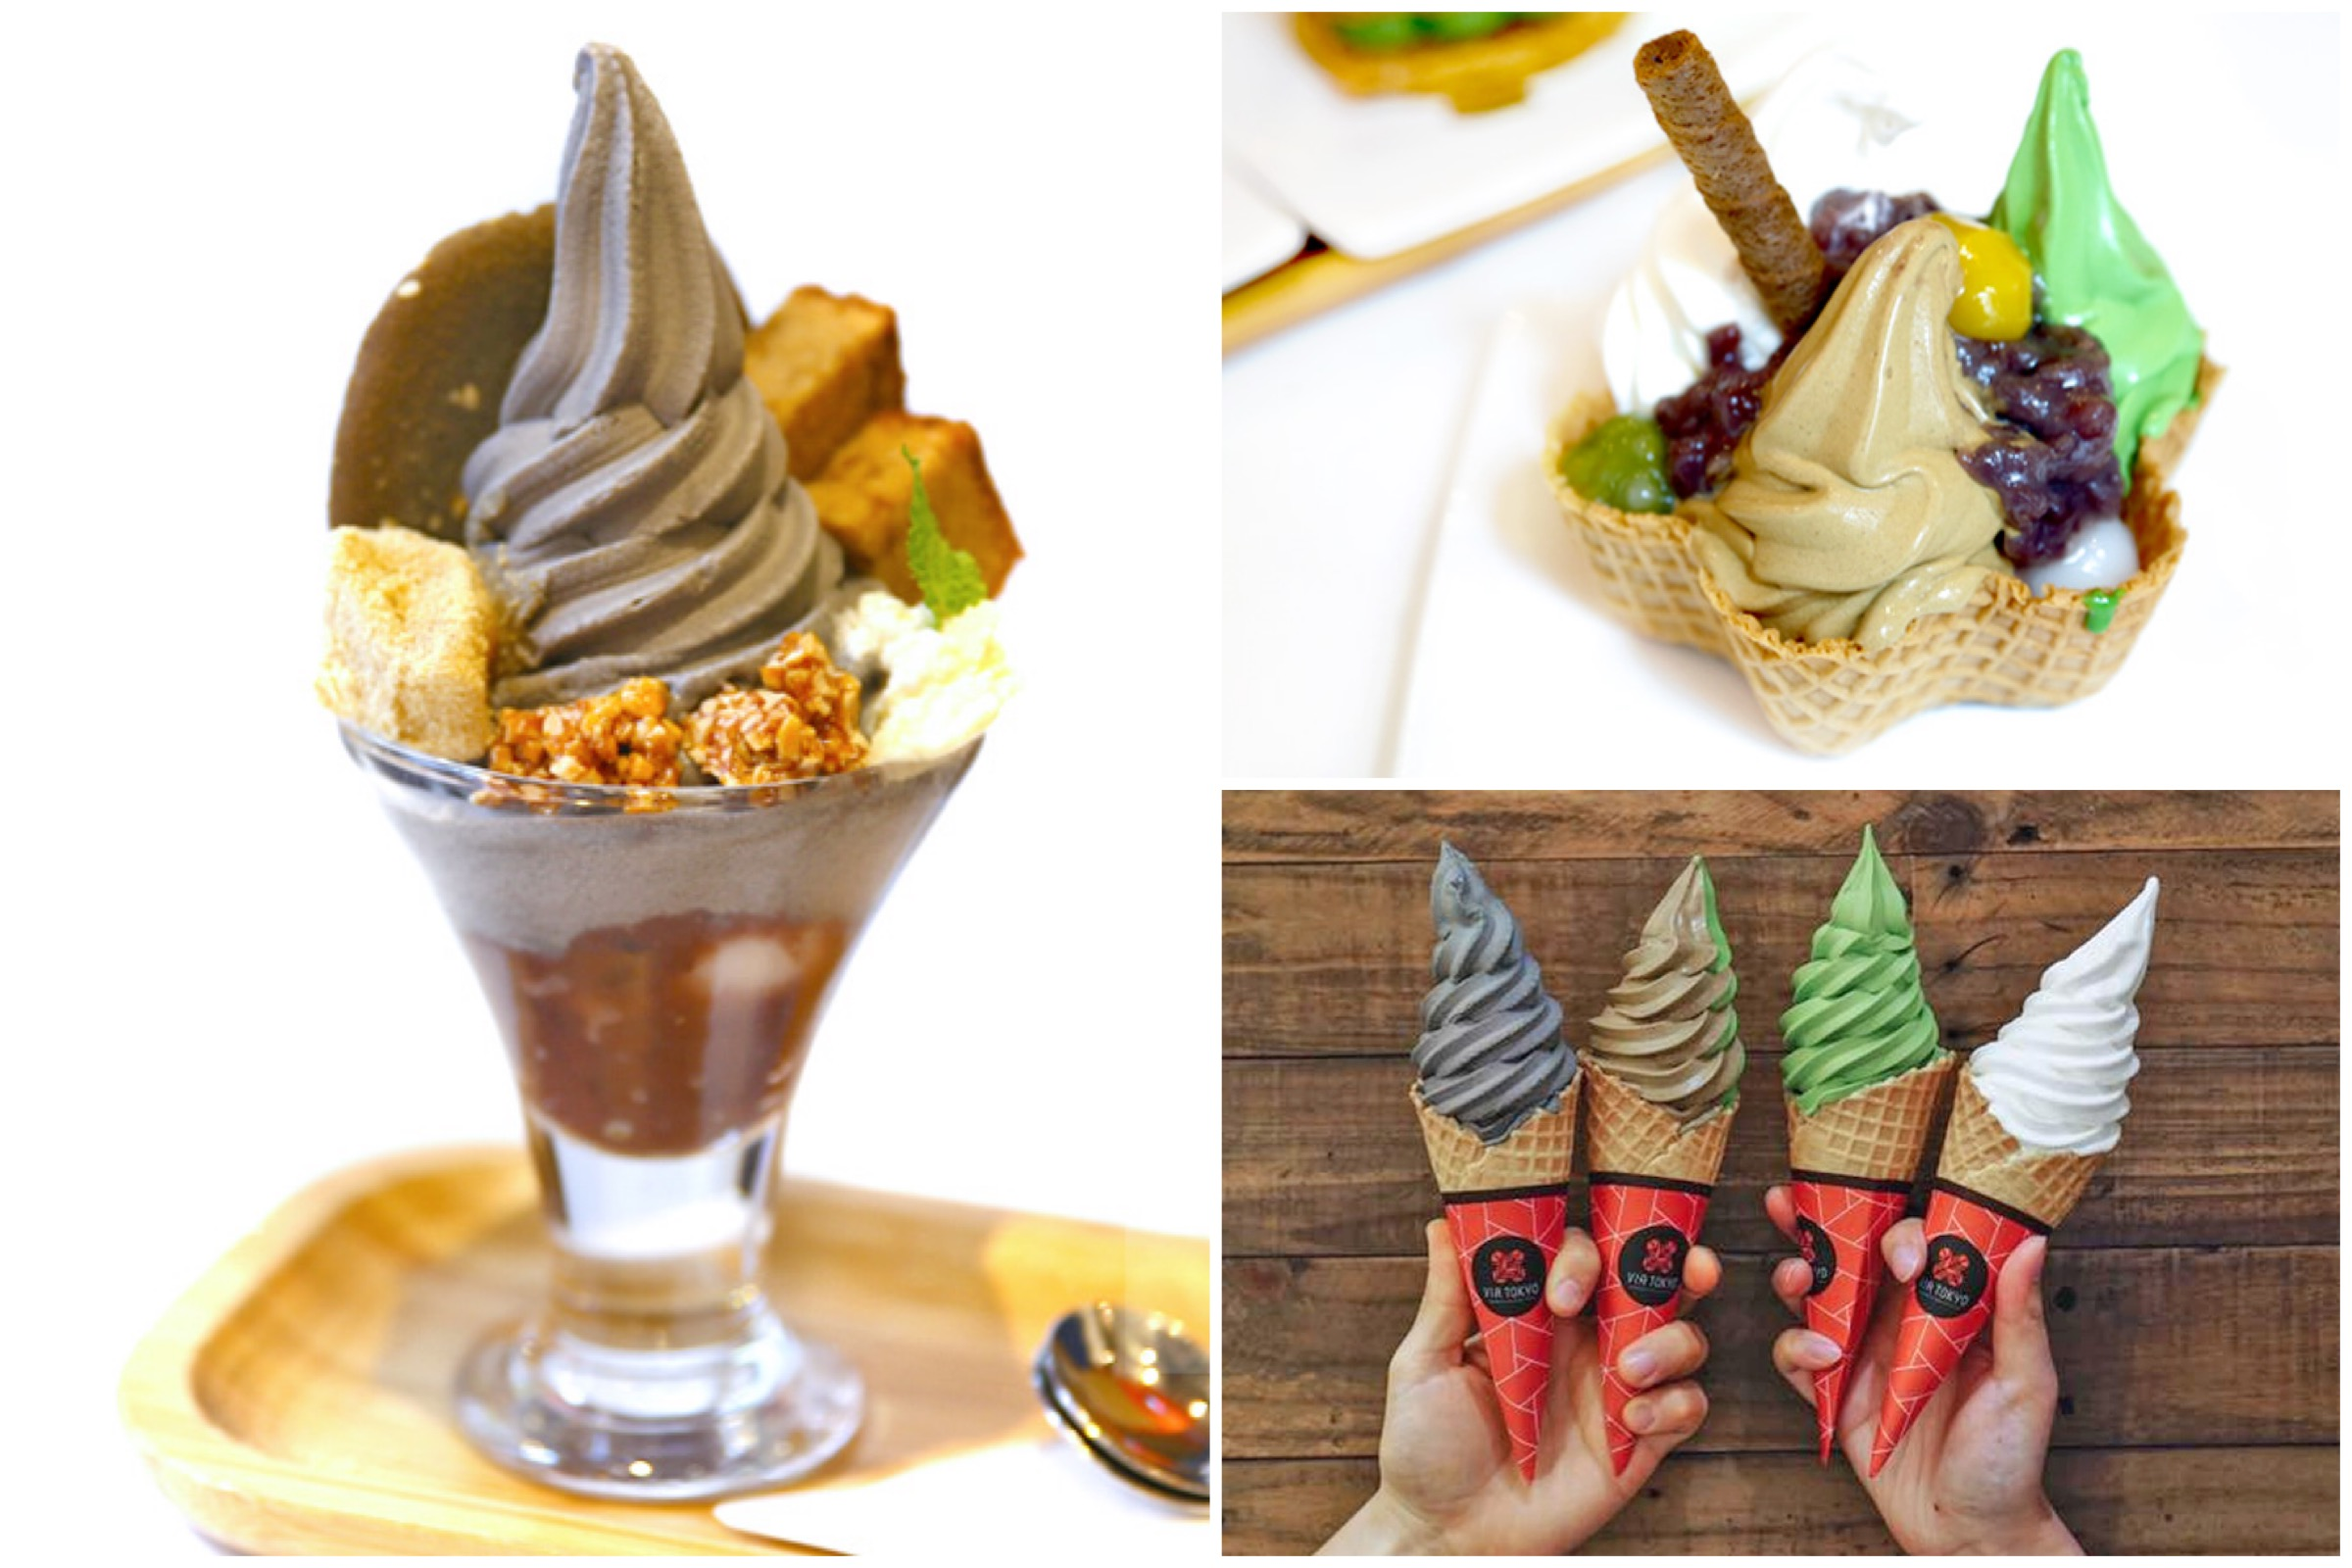 Via Tokyo – For Japanese Desserts And Soft Serves, Another Outlet At Tsim Sha Tsui